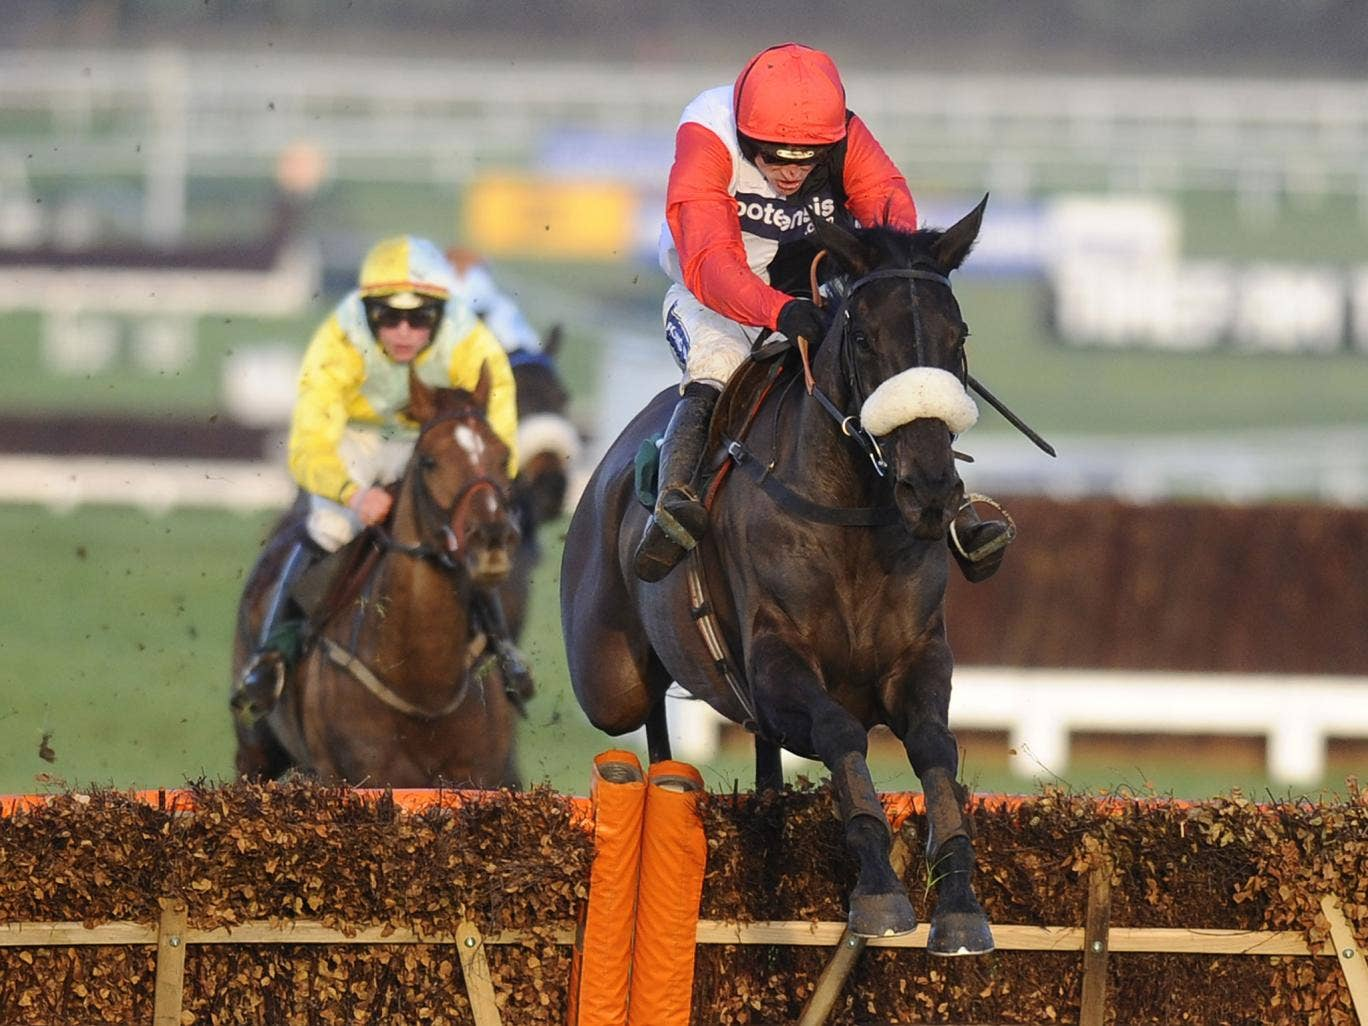 Big Buck's wins in 2012 at Cheltenham, where he returns on Saturday after missing last year